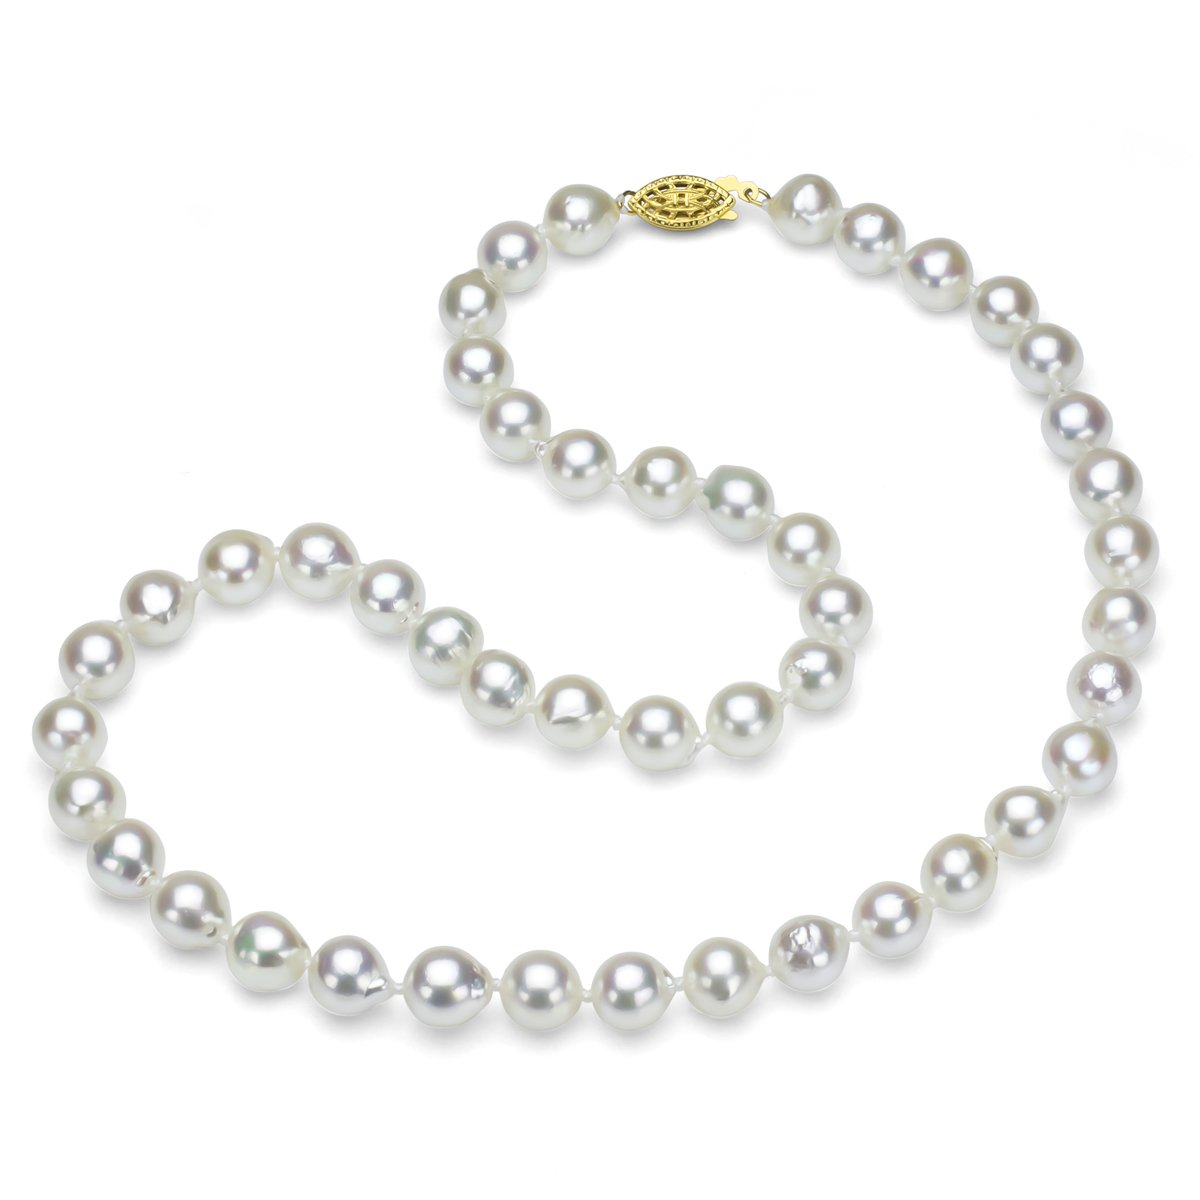 18k Yellow Gold Plated Sterling Silver 8-8.5mm White Off-Shape Akoya Cultured Pearl Necklace, 18''